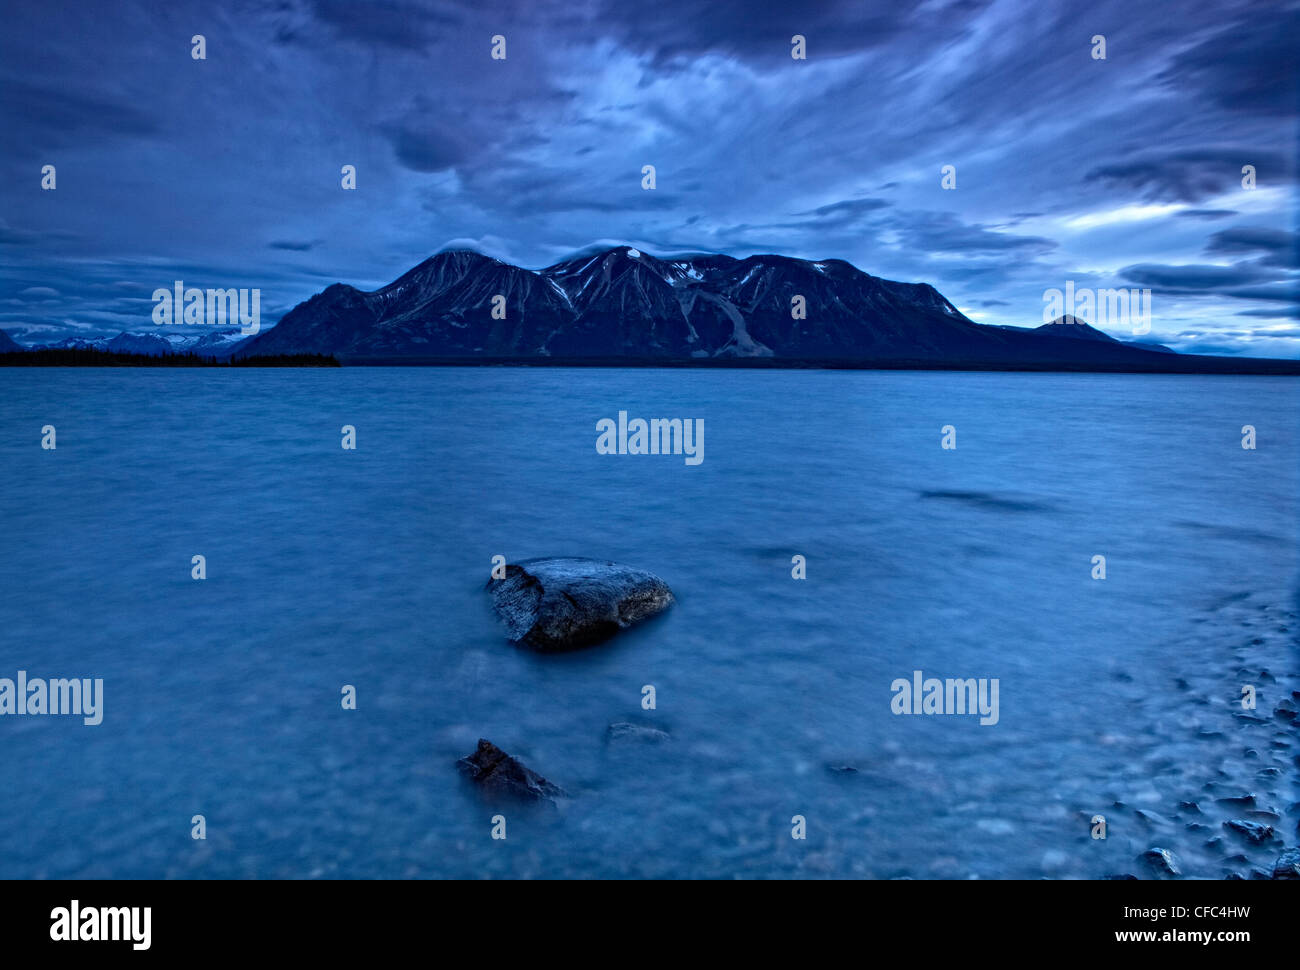 Long exposure of Teresa Mountain and Atlin Lake taken from the shore after sunset. Located in northern British Columbia - Stock Image